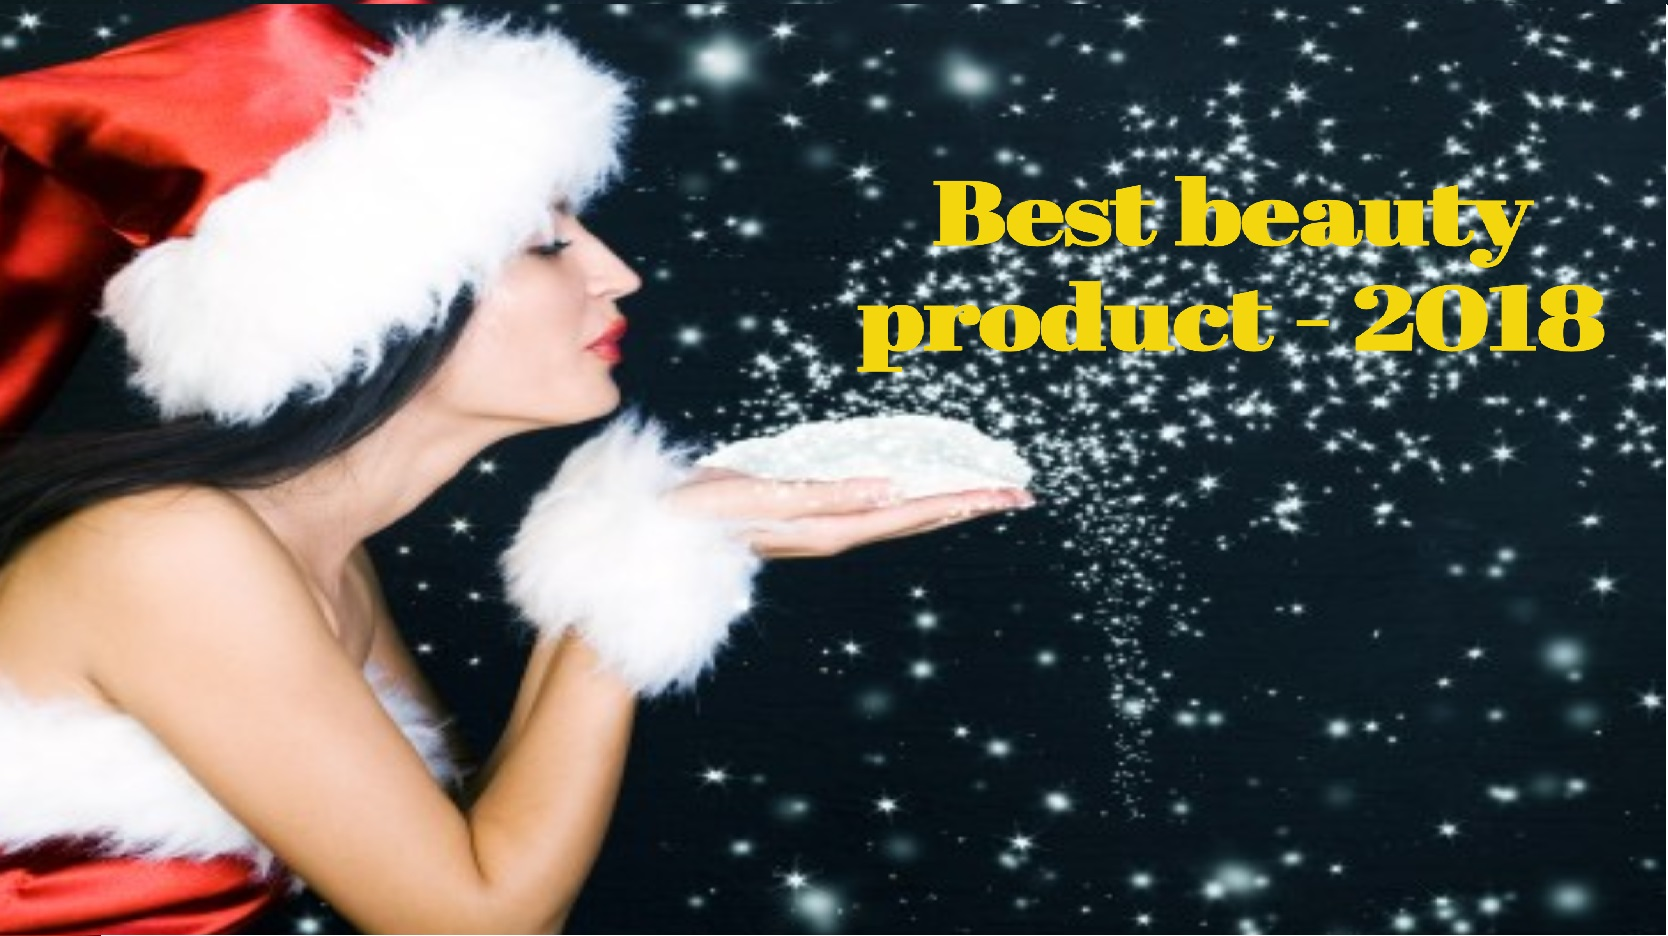 Best Beauty Product 2018